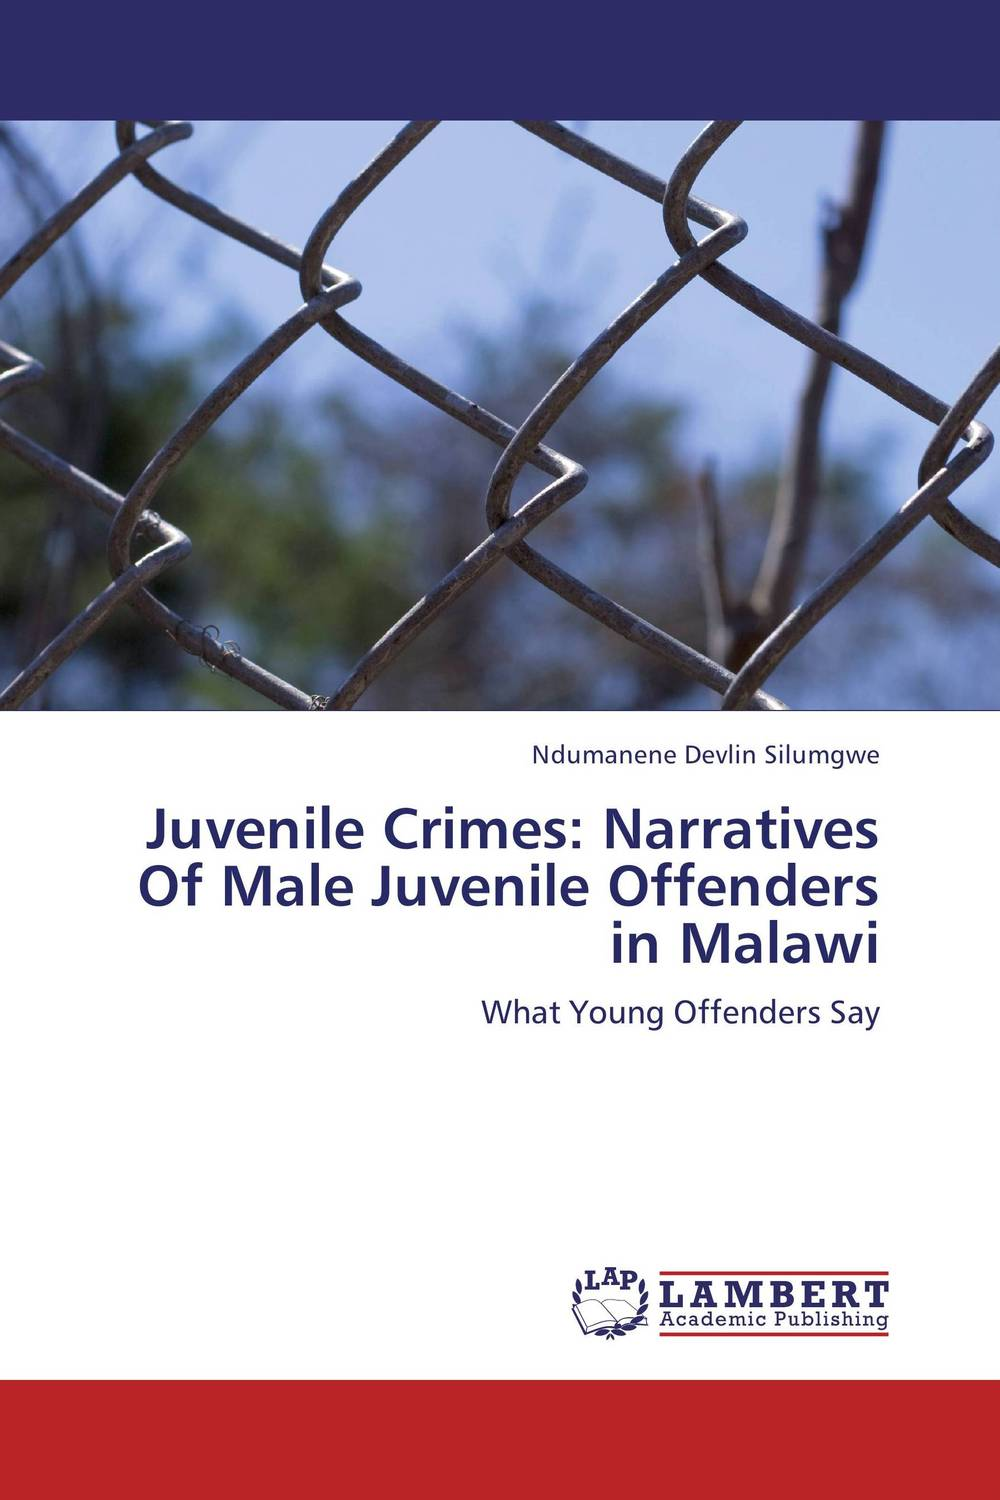 Juvenile Crimes: Narratives Of Male Juvenile Offenders in Malawi linguistic diversity and social justice